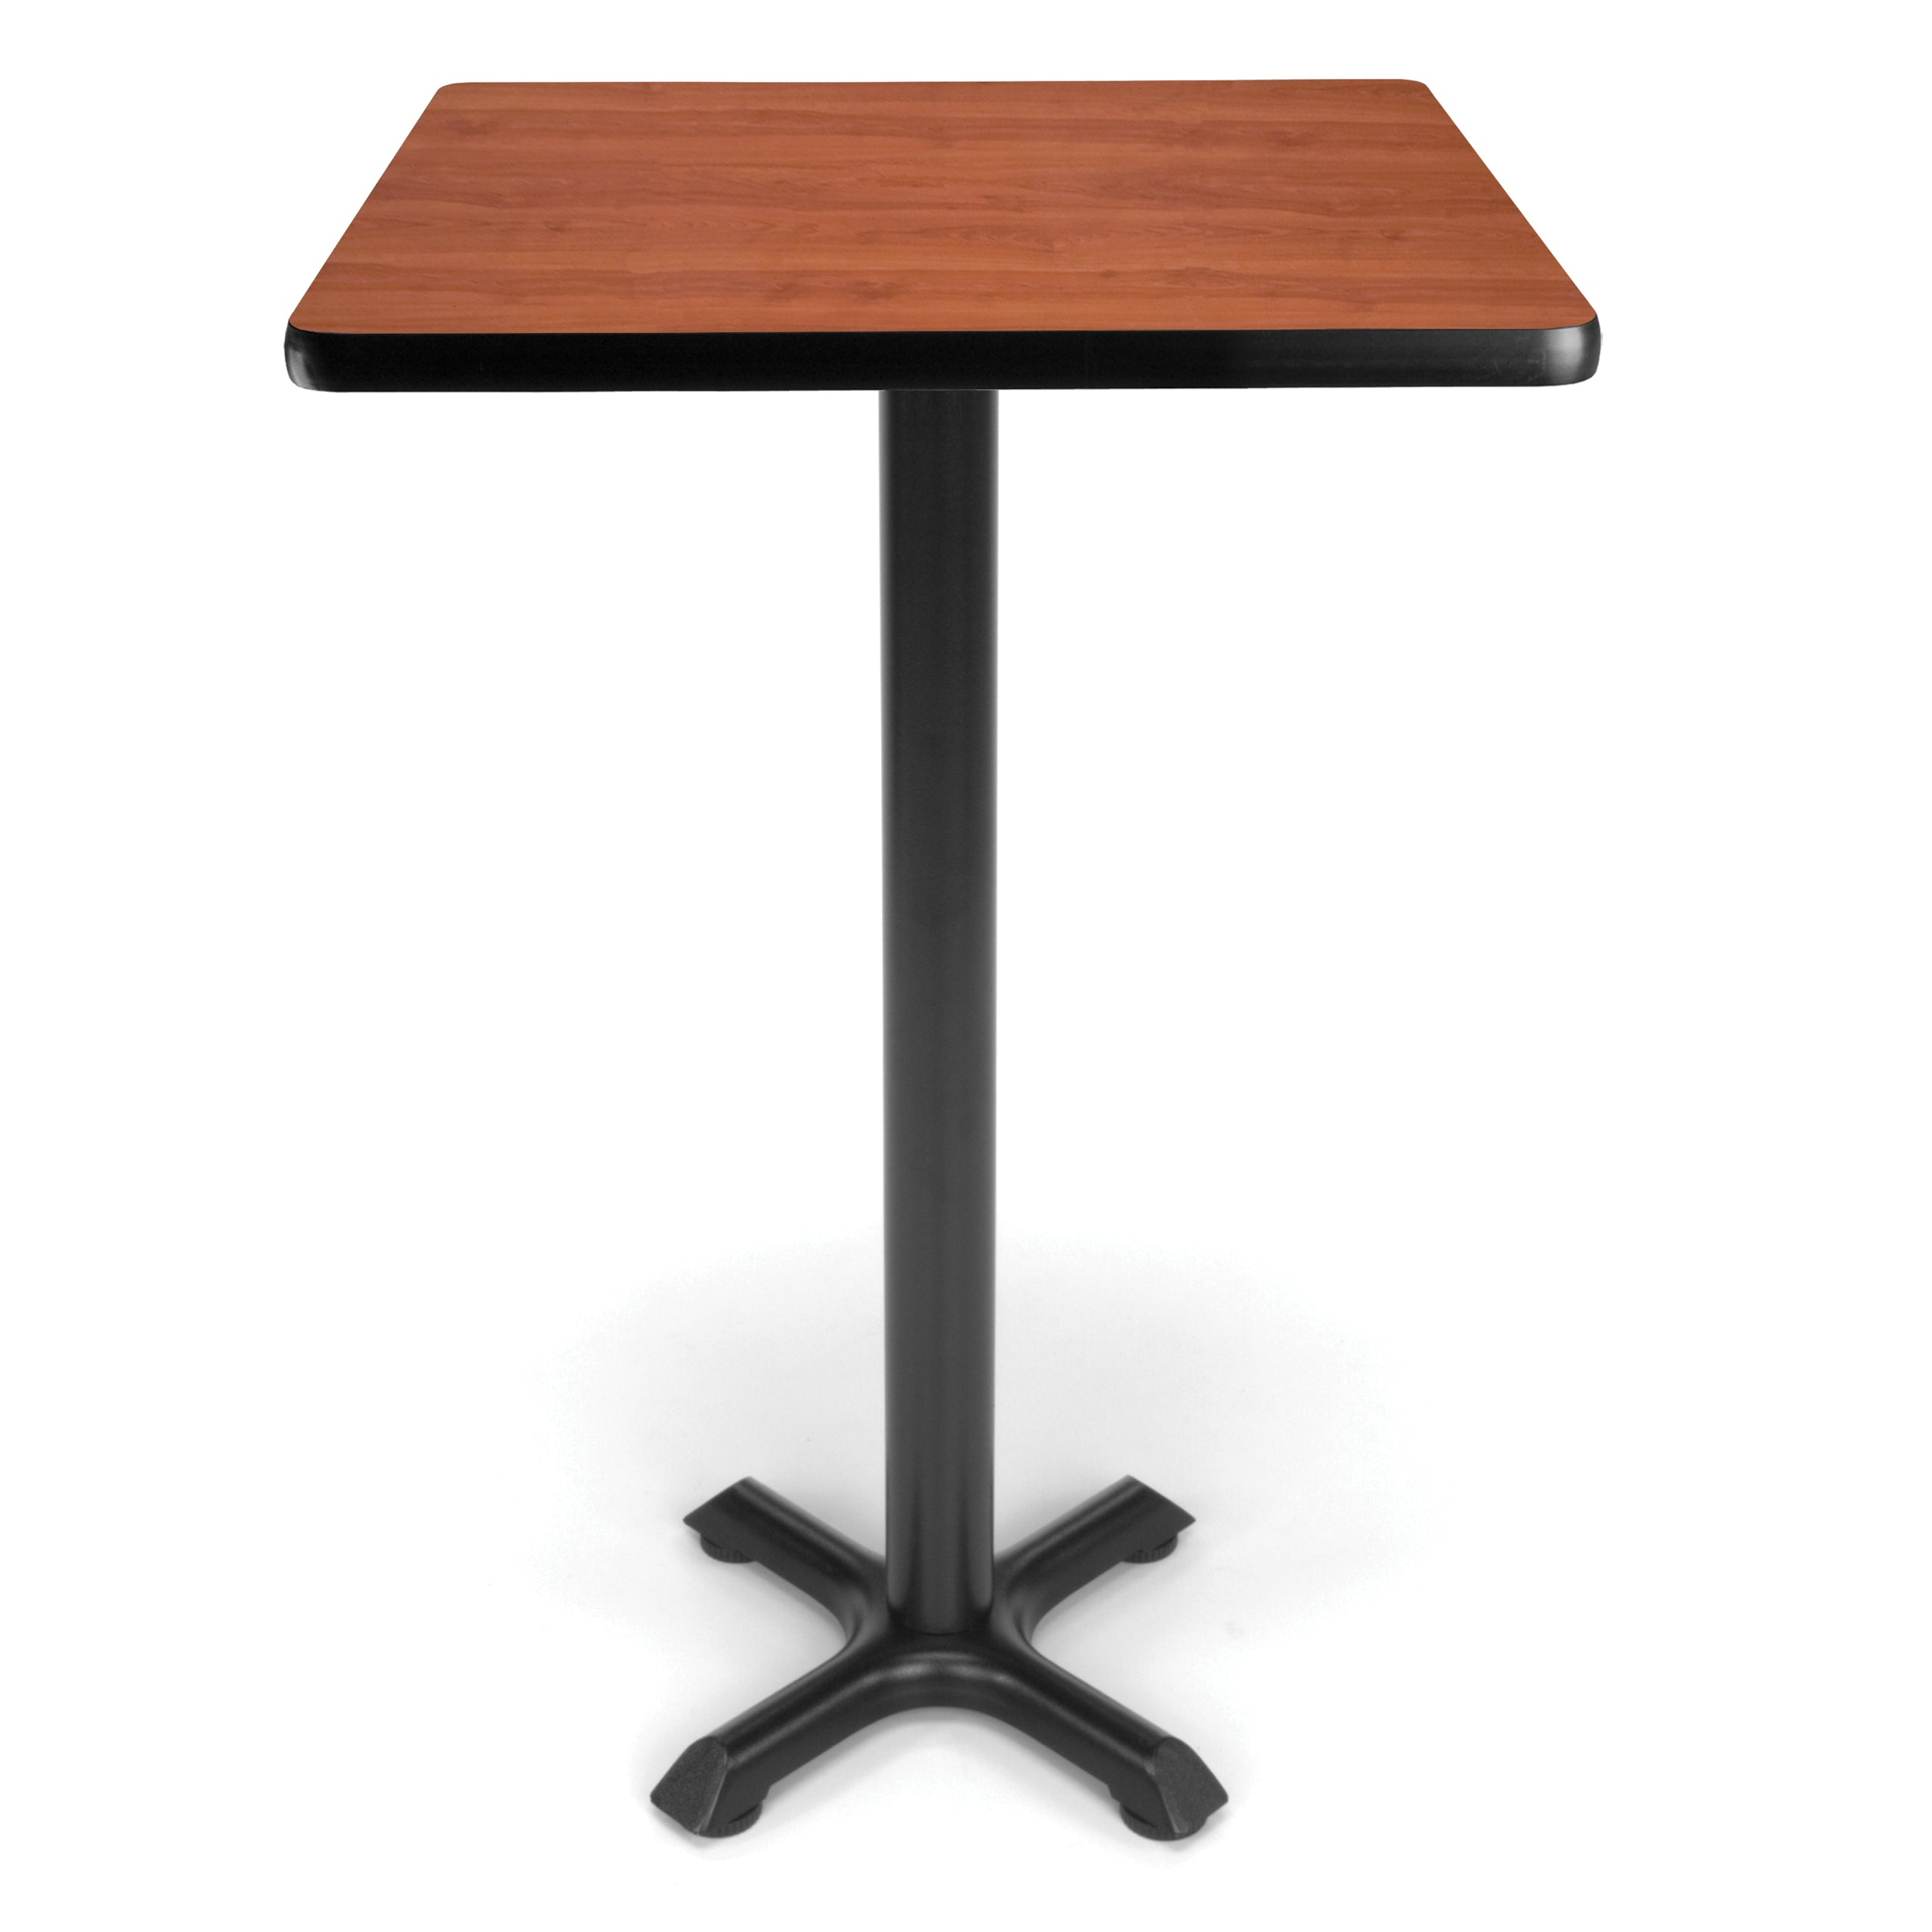 Ofminc Model XTC24SQ Square Cafe Height Table with X Base 24 Inch